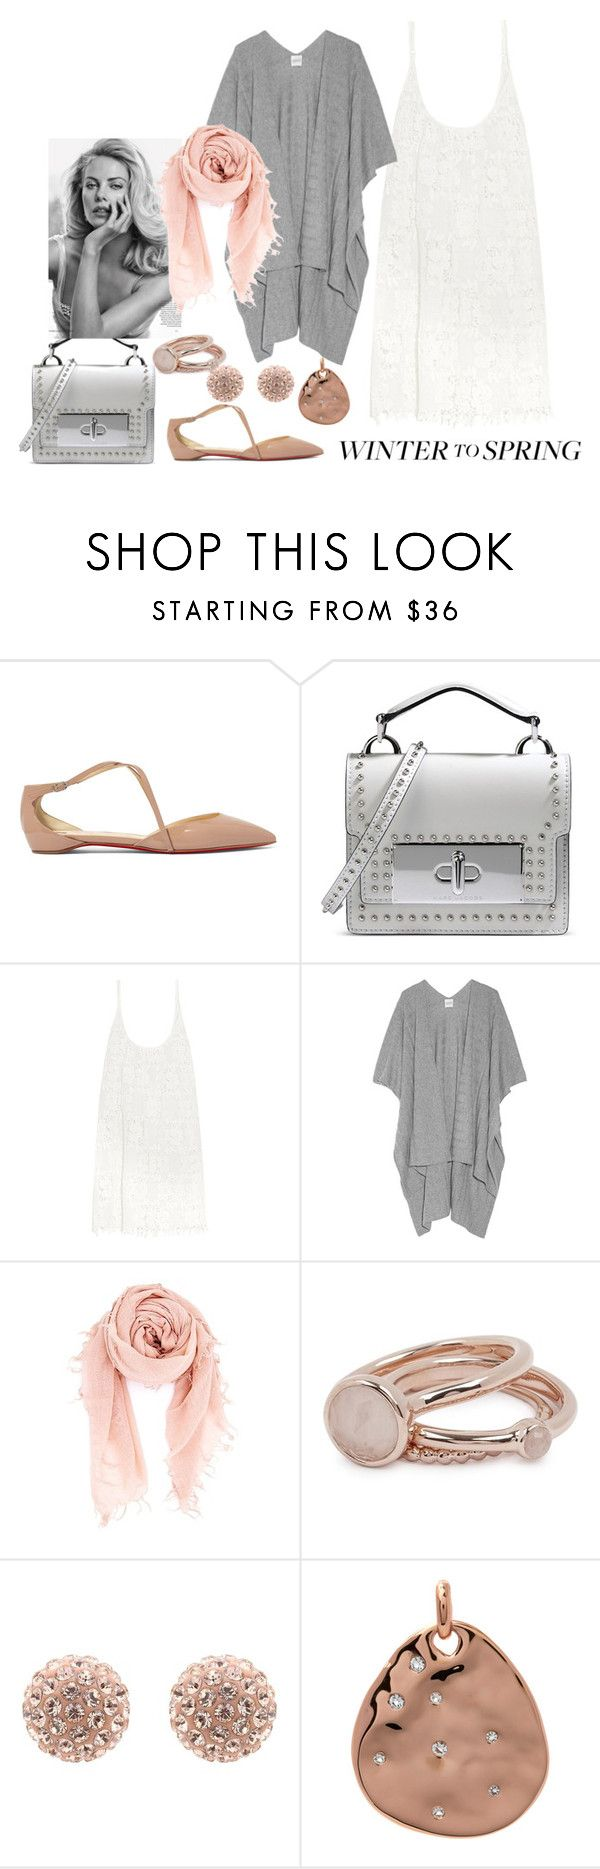 """Keep it Cool"" by anandiek ❤ liked on Polyvore featuring Christian Louboutin, Marc Jacobs, Melissa Odabash, Madeleine Thompson, Chan Luu, Lola Rose and Monica Vinader"